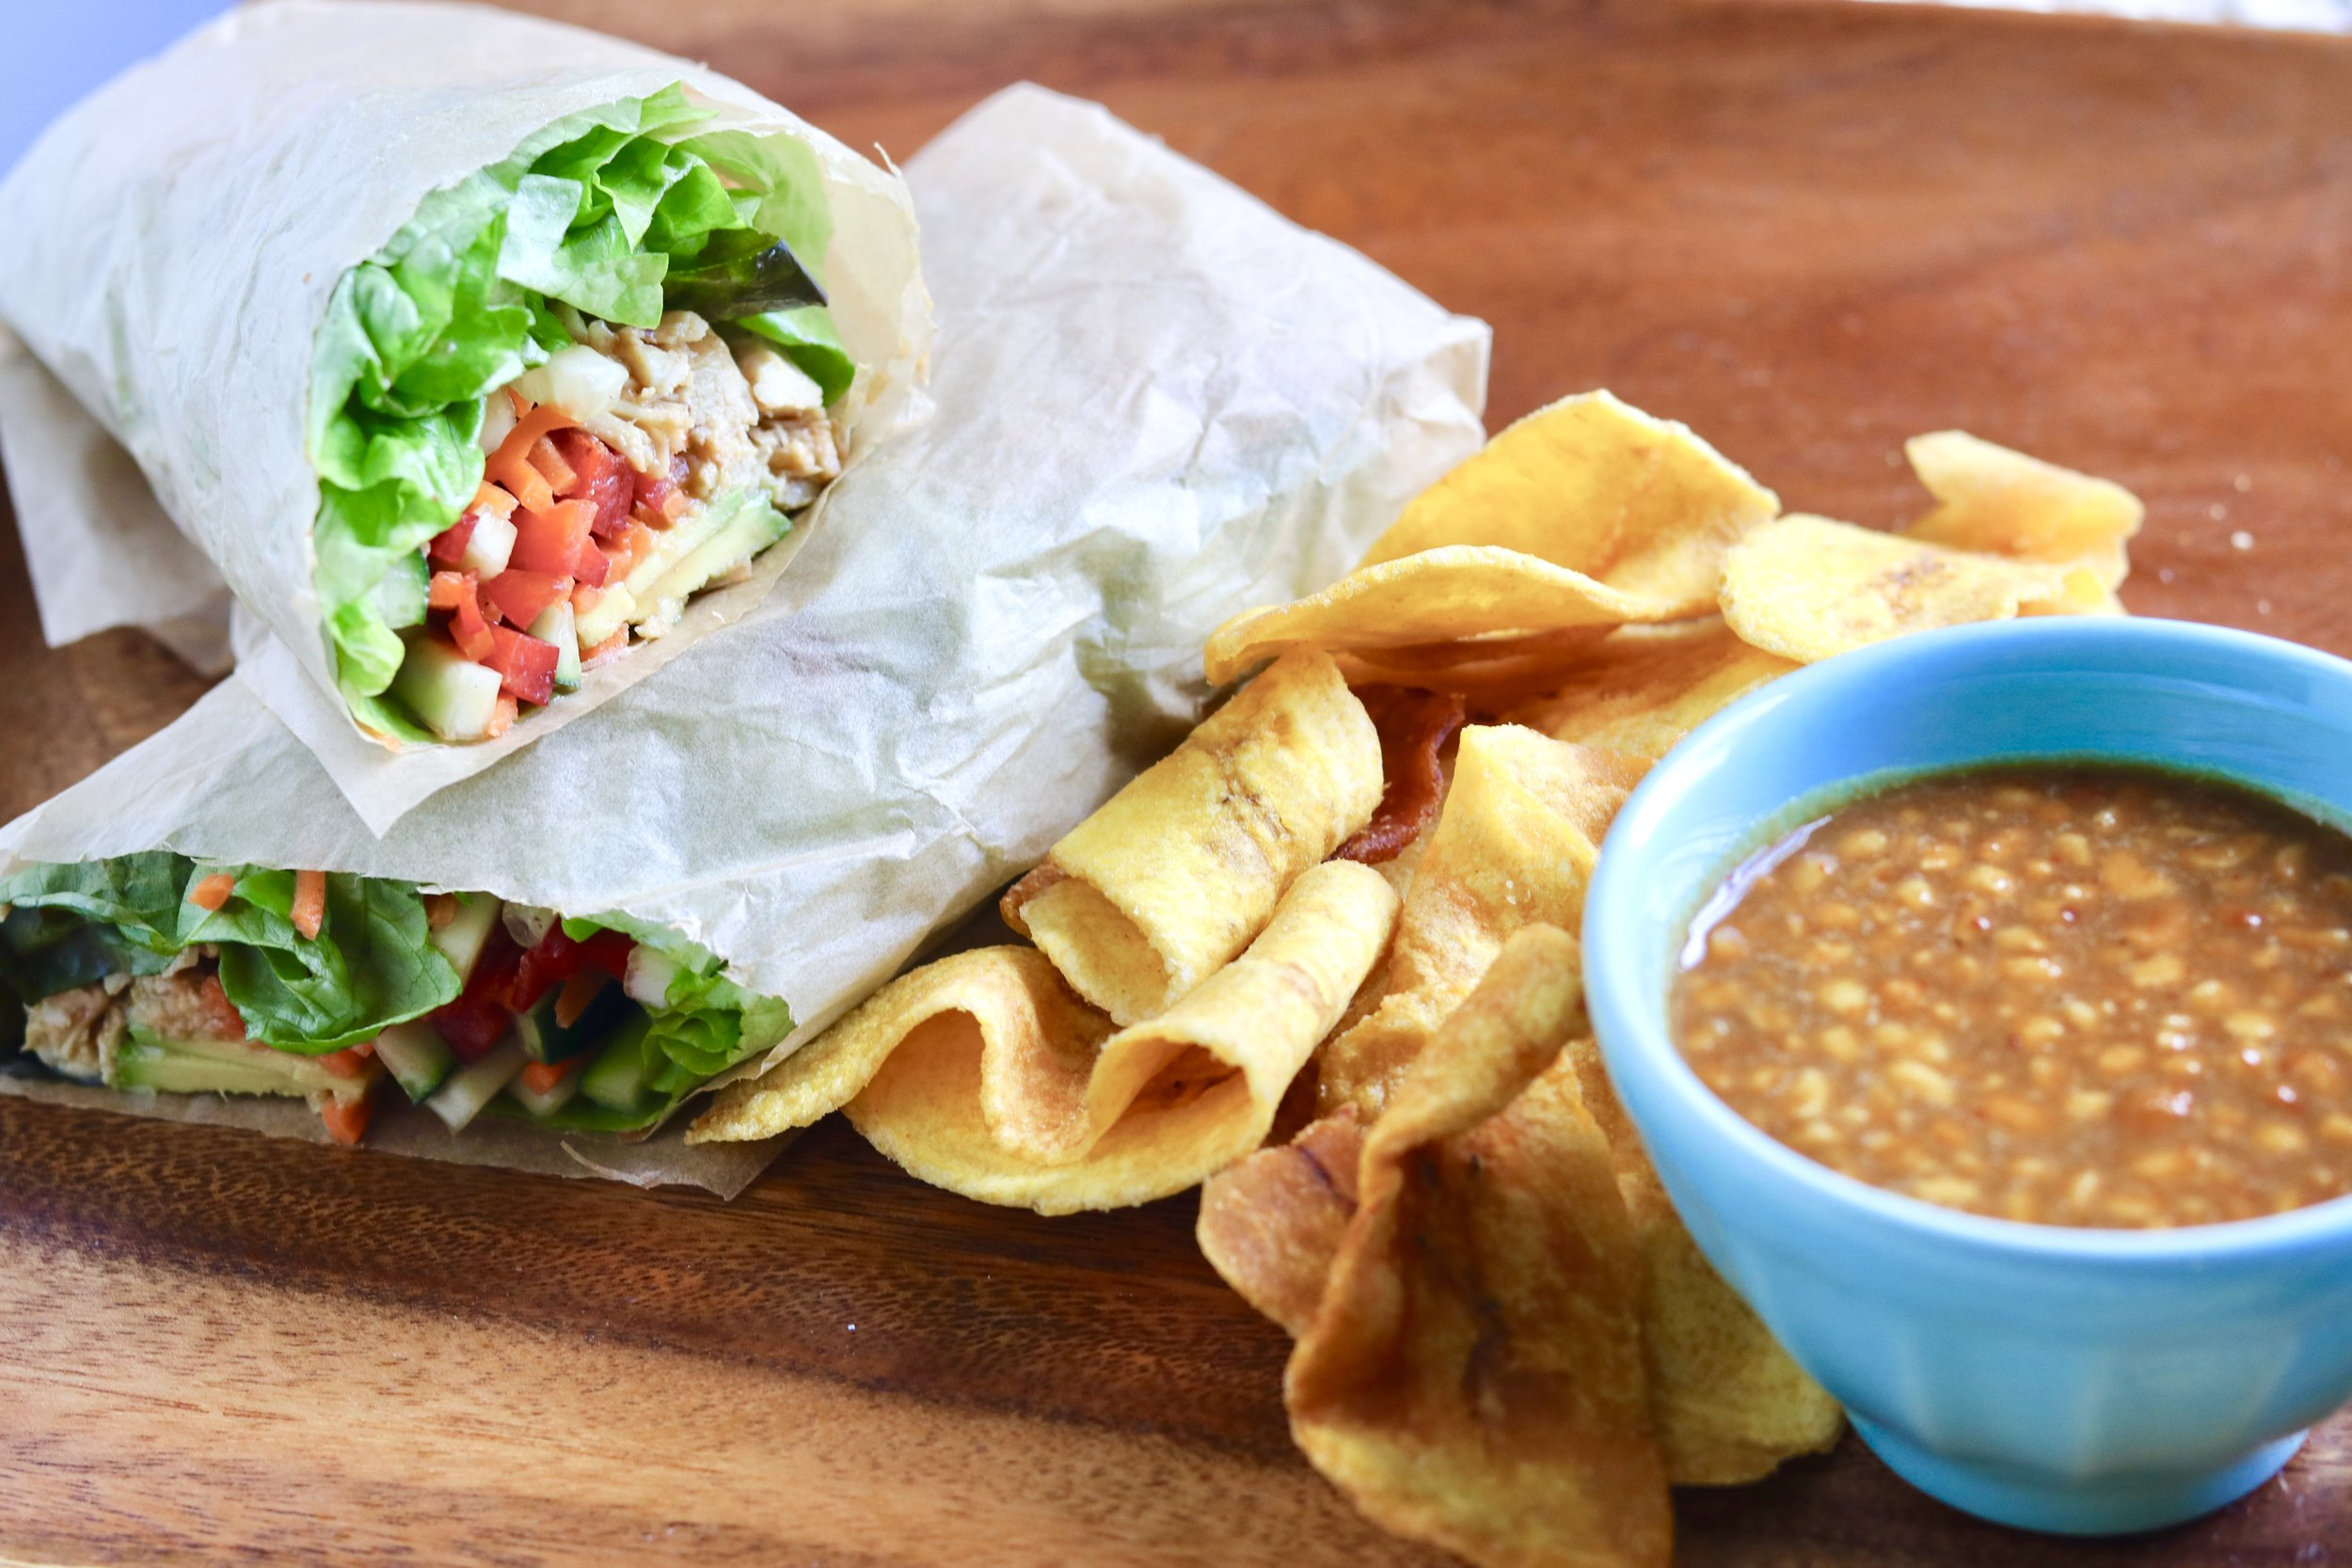 Spring Roll Lettuce Wrap with Peanut Sauce by I'd Eat That Food